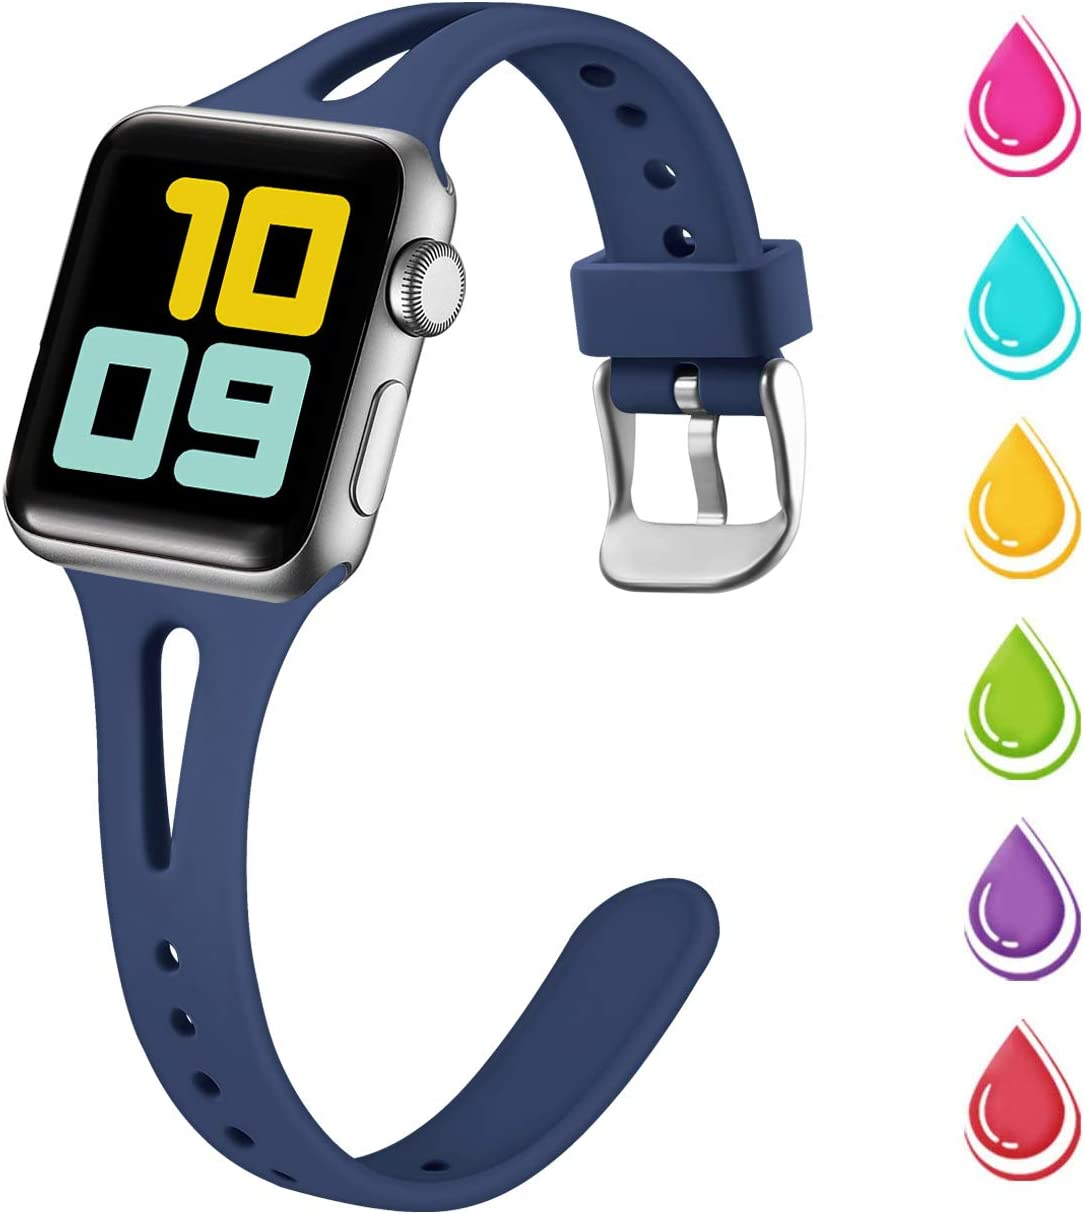 Nofeda Slim Band Compatible with Apple Watch 40mm 38mm, Soft Silicone Breathable Narrow Thin Sport Bands Replacement for iWatch Series 5 4 3 2 1, Sport Edition Women Men, S/M, Navy Blue